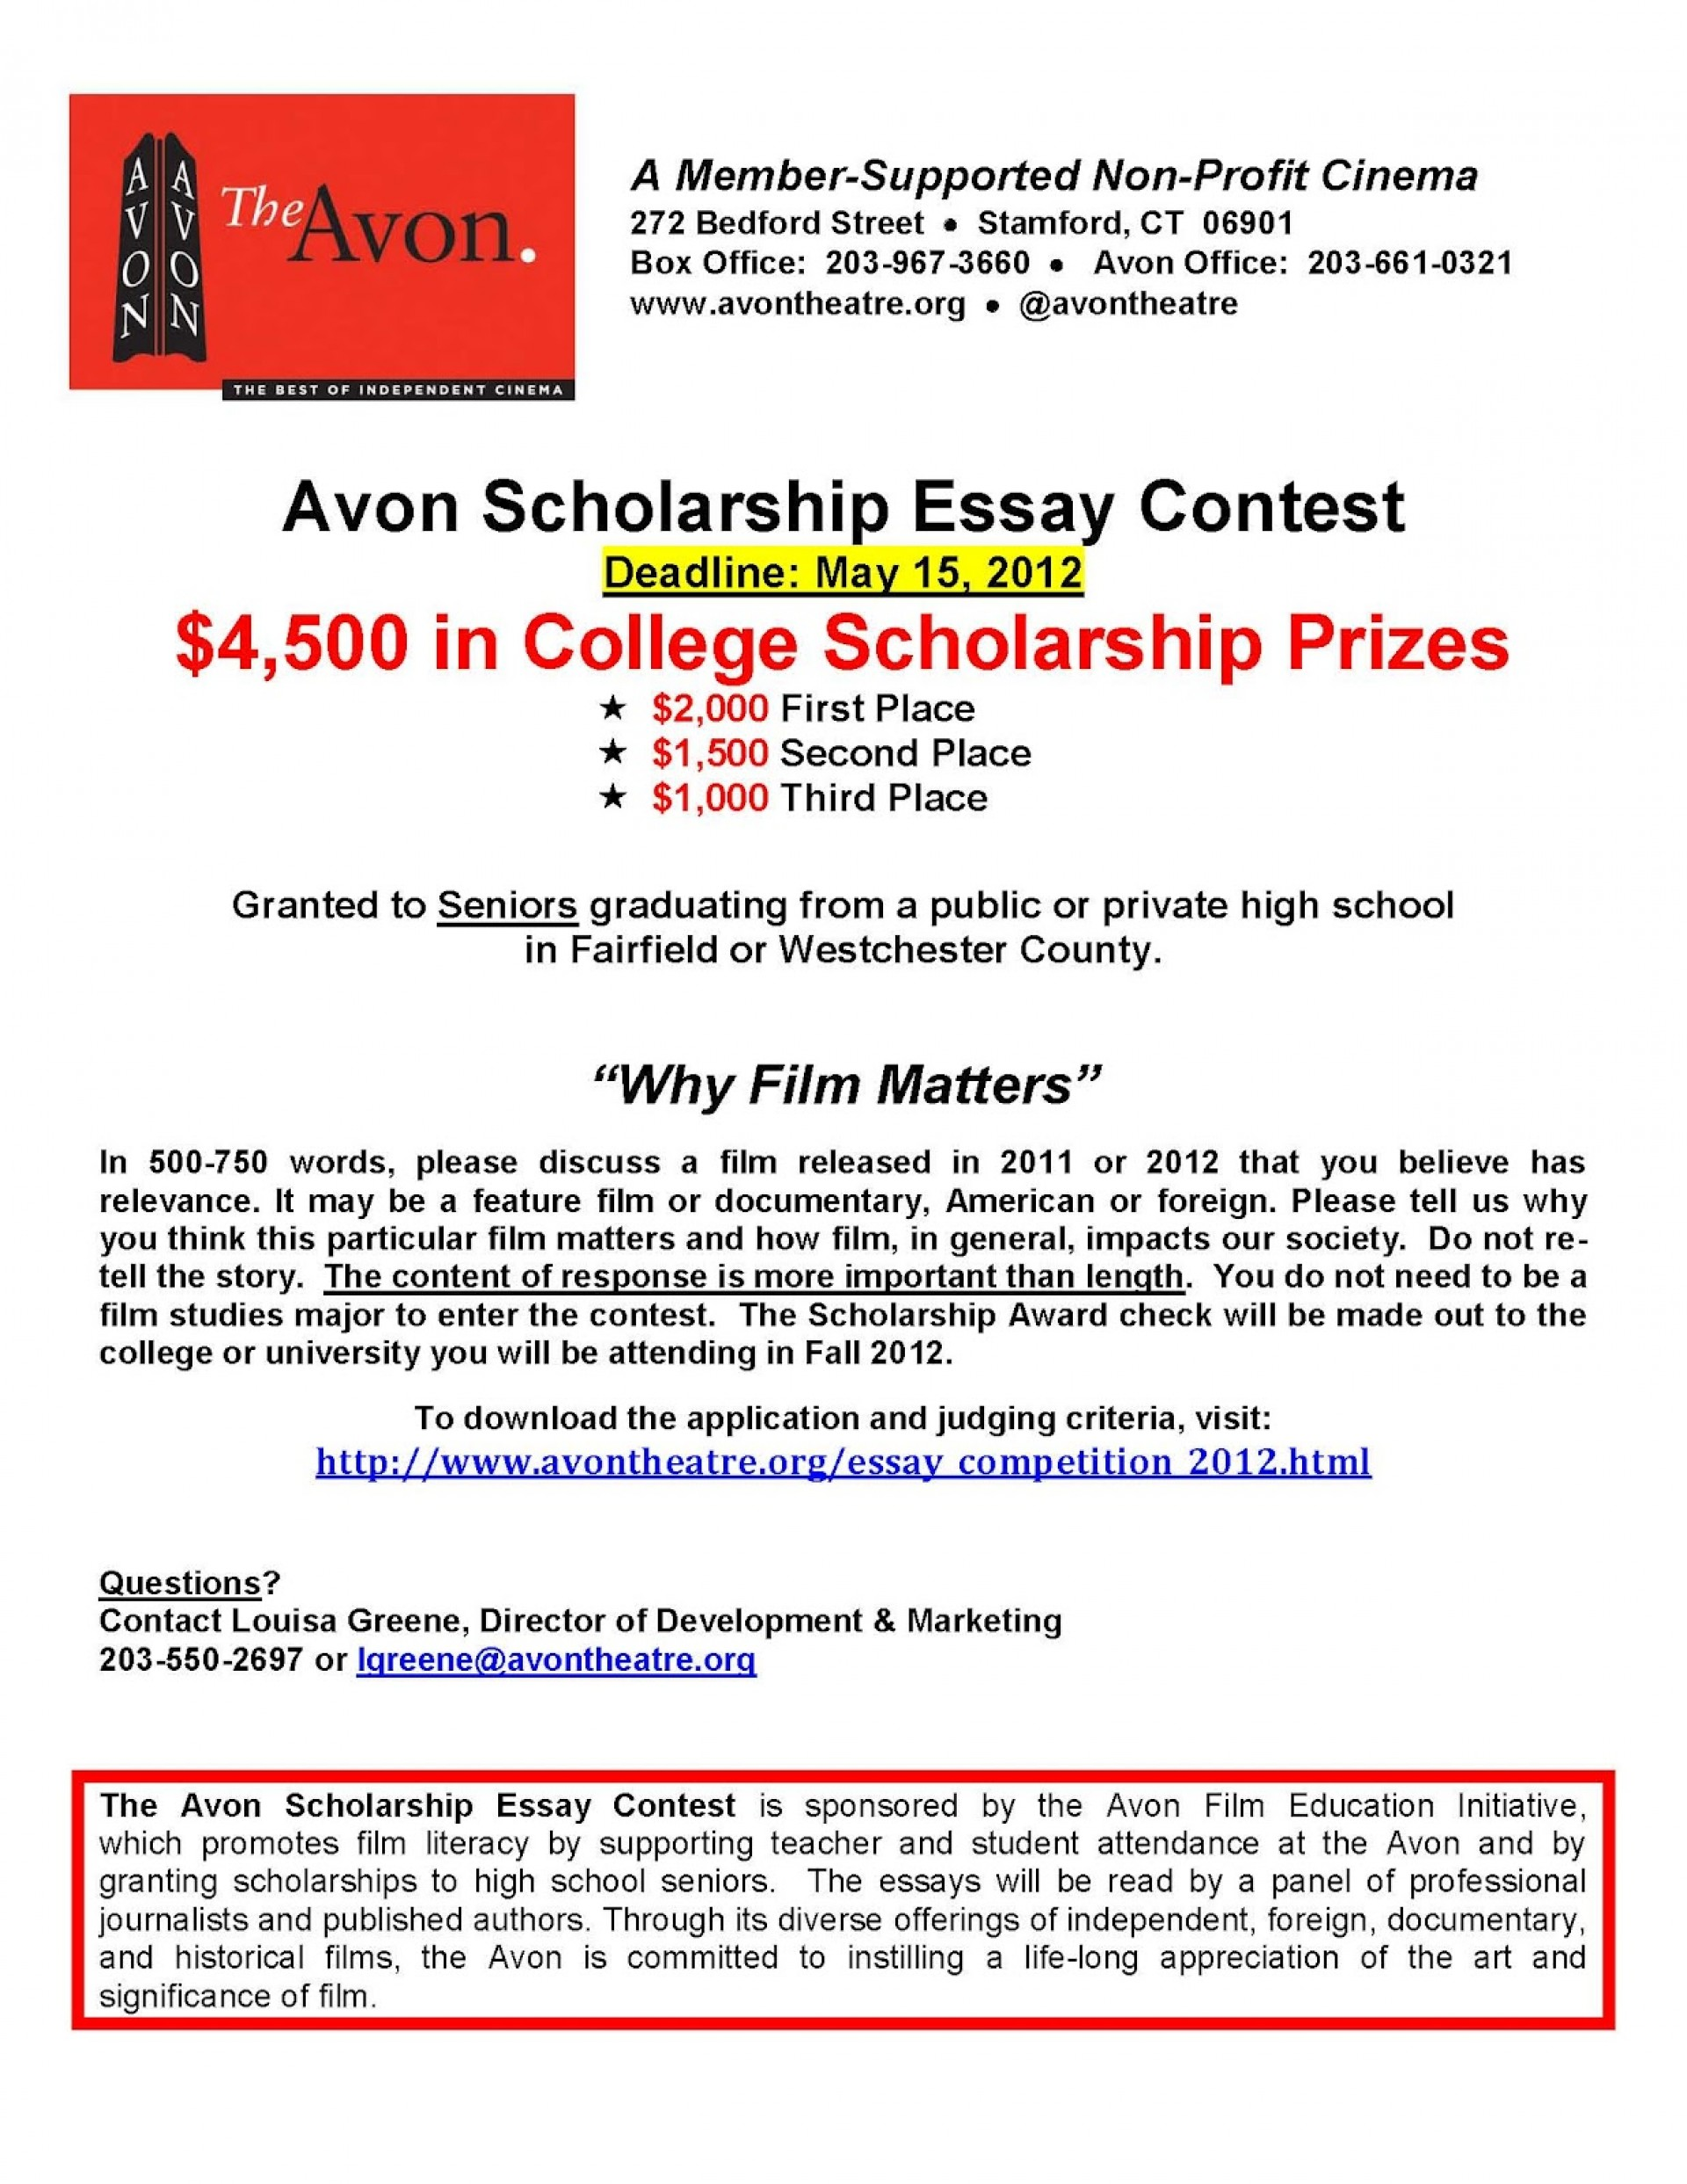 016 Avonscholarshipessaycontest2012flyer Essay Example Shocking Scholarships For High School Sophomores No 2018 1920